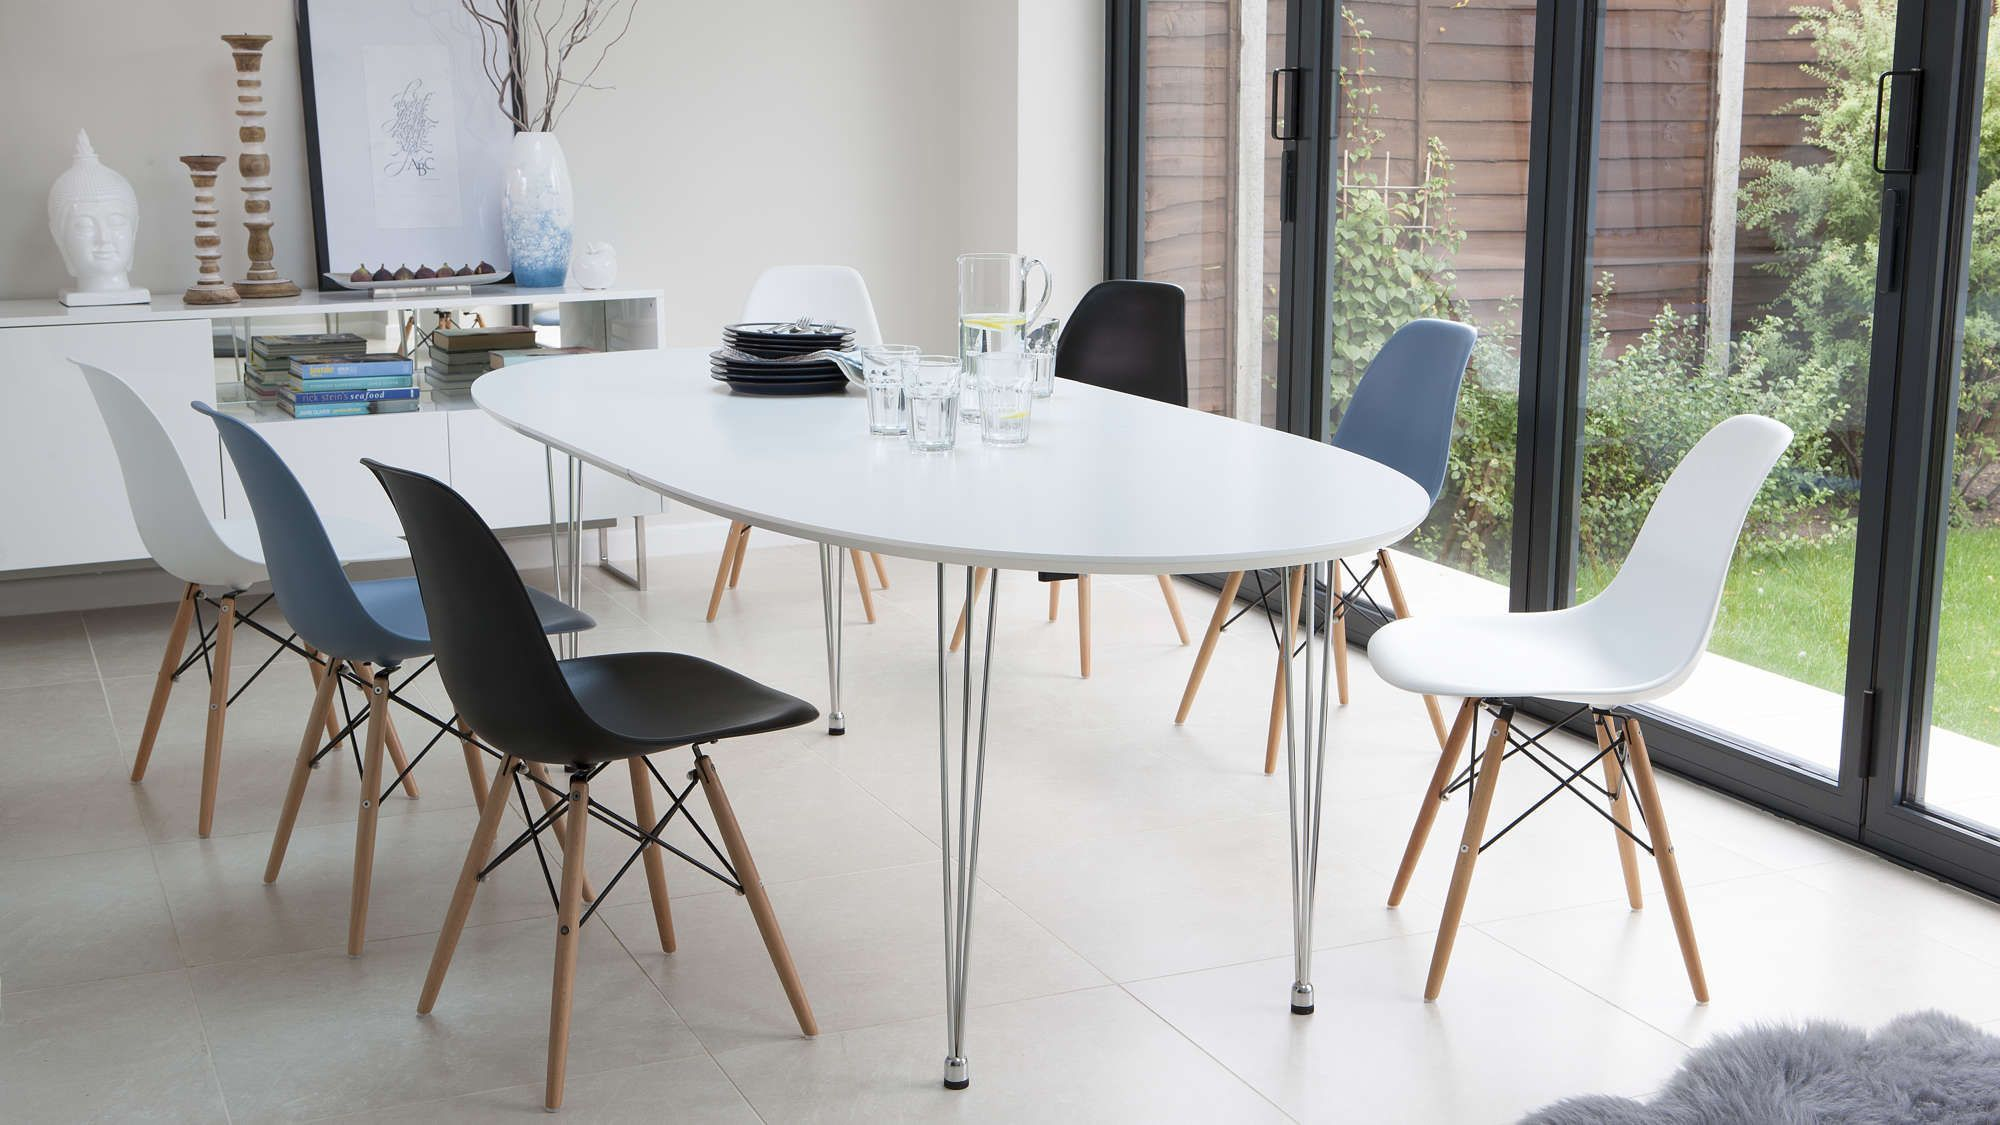 Contemporary Dining Tables Extendable For Modern Homes Oval Table Dining Dining Table Dining Table Chairs